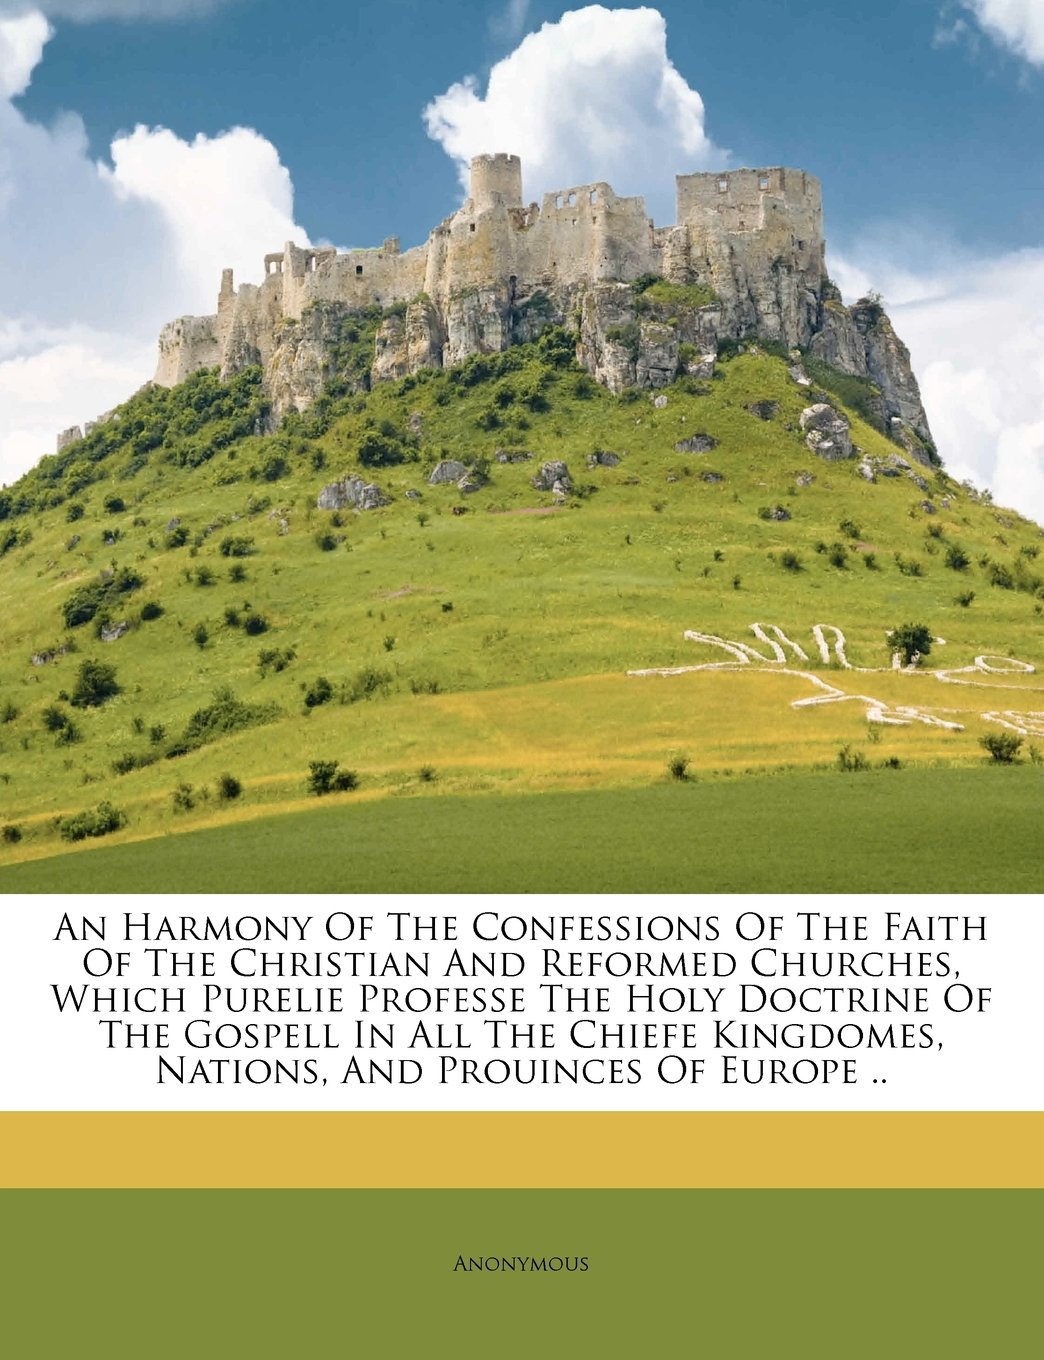 Download An Harmony Of The Confessions Of The Faith Of The Christian And Reformed Churches, Which Purelie Professe The Holy Doctrine Of The Gospell In All The ... Nations, And Prouinces Of Europe .. pdf epub